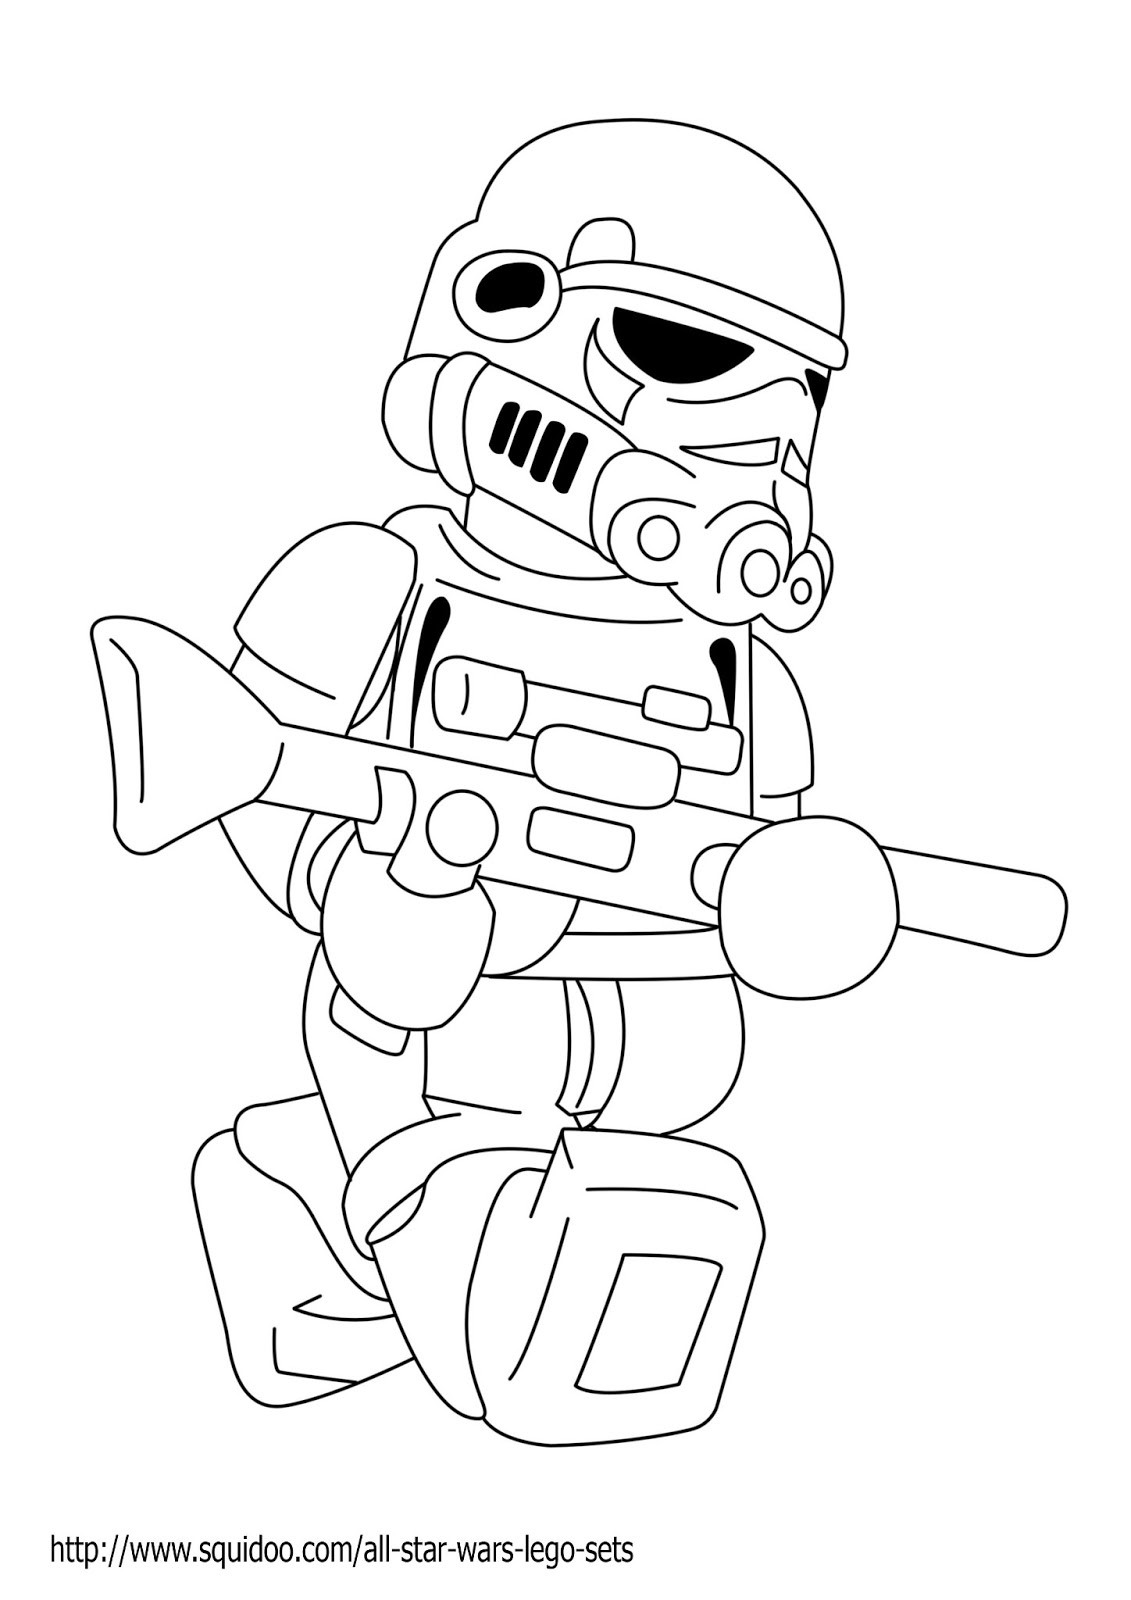 Lego Star Wars Coloring Pages To Print  Stormtrooper Coloring Pages Printable Coloring Pages